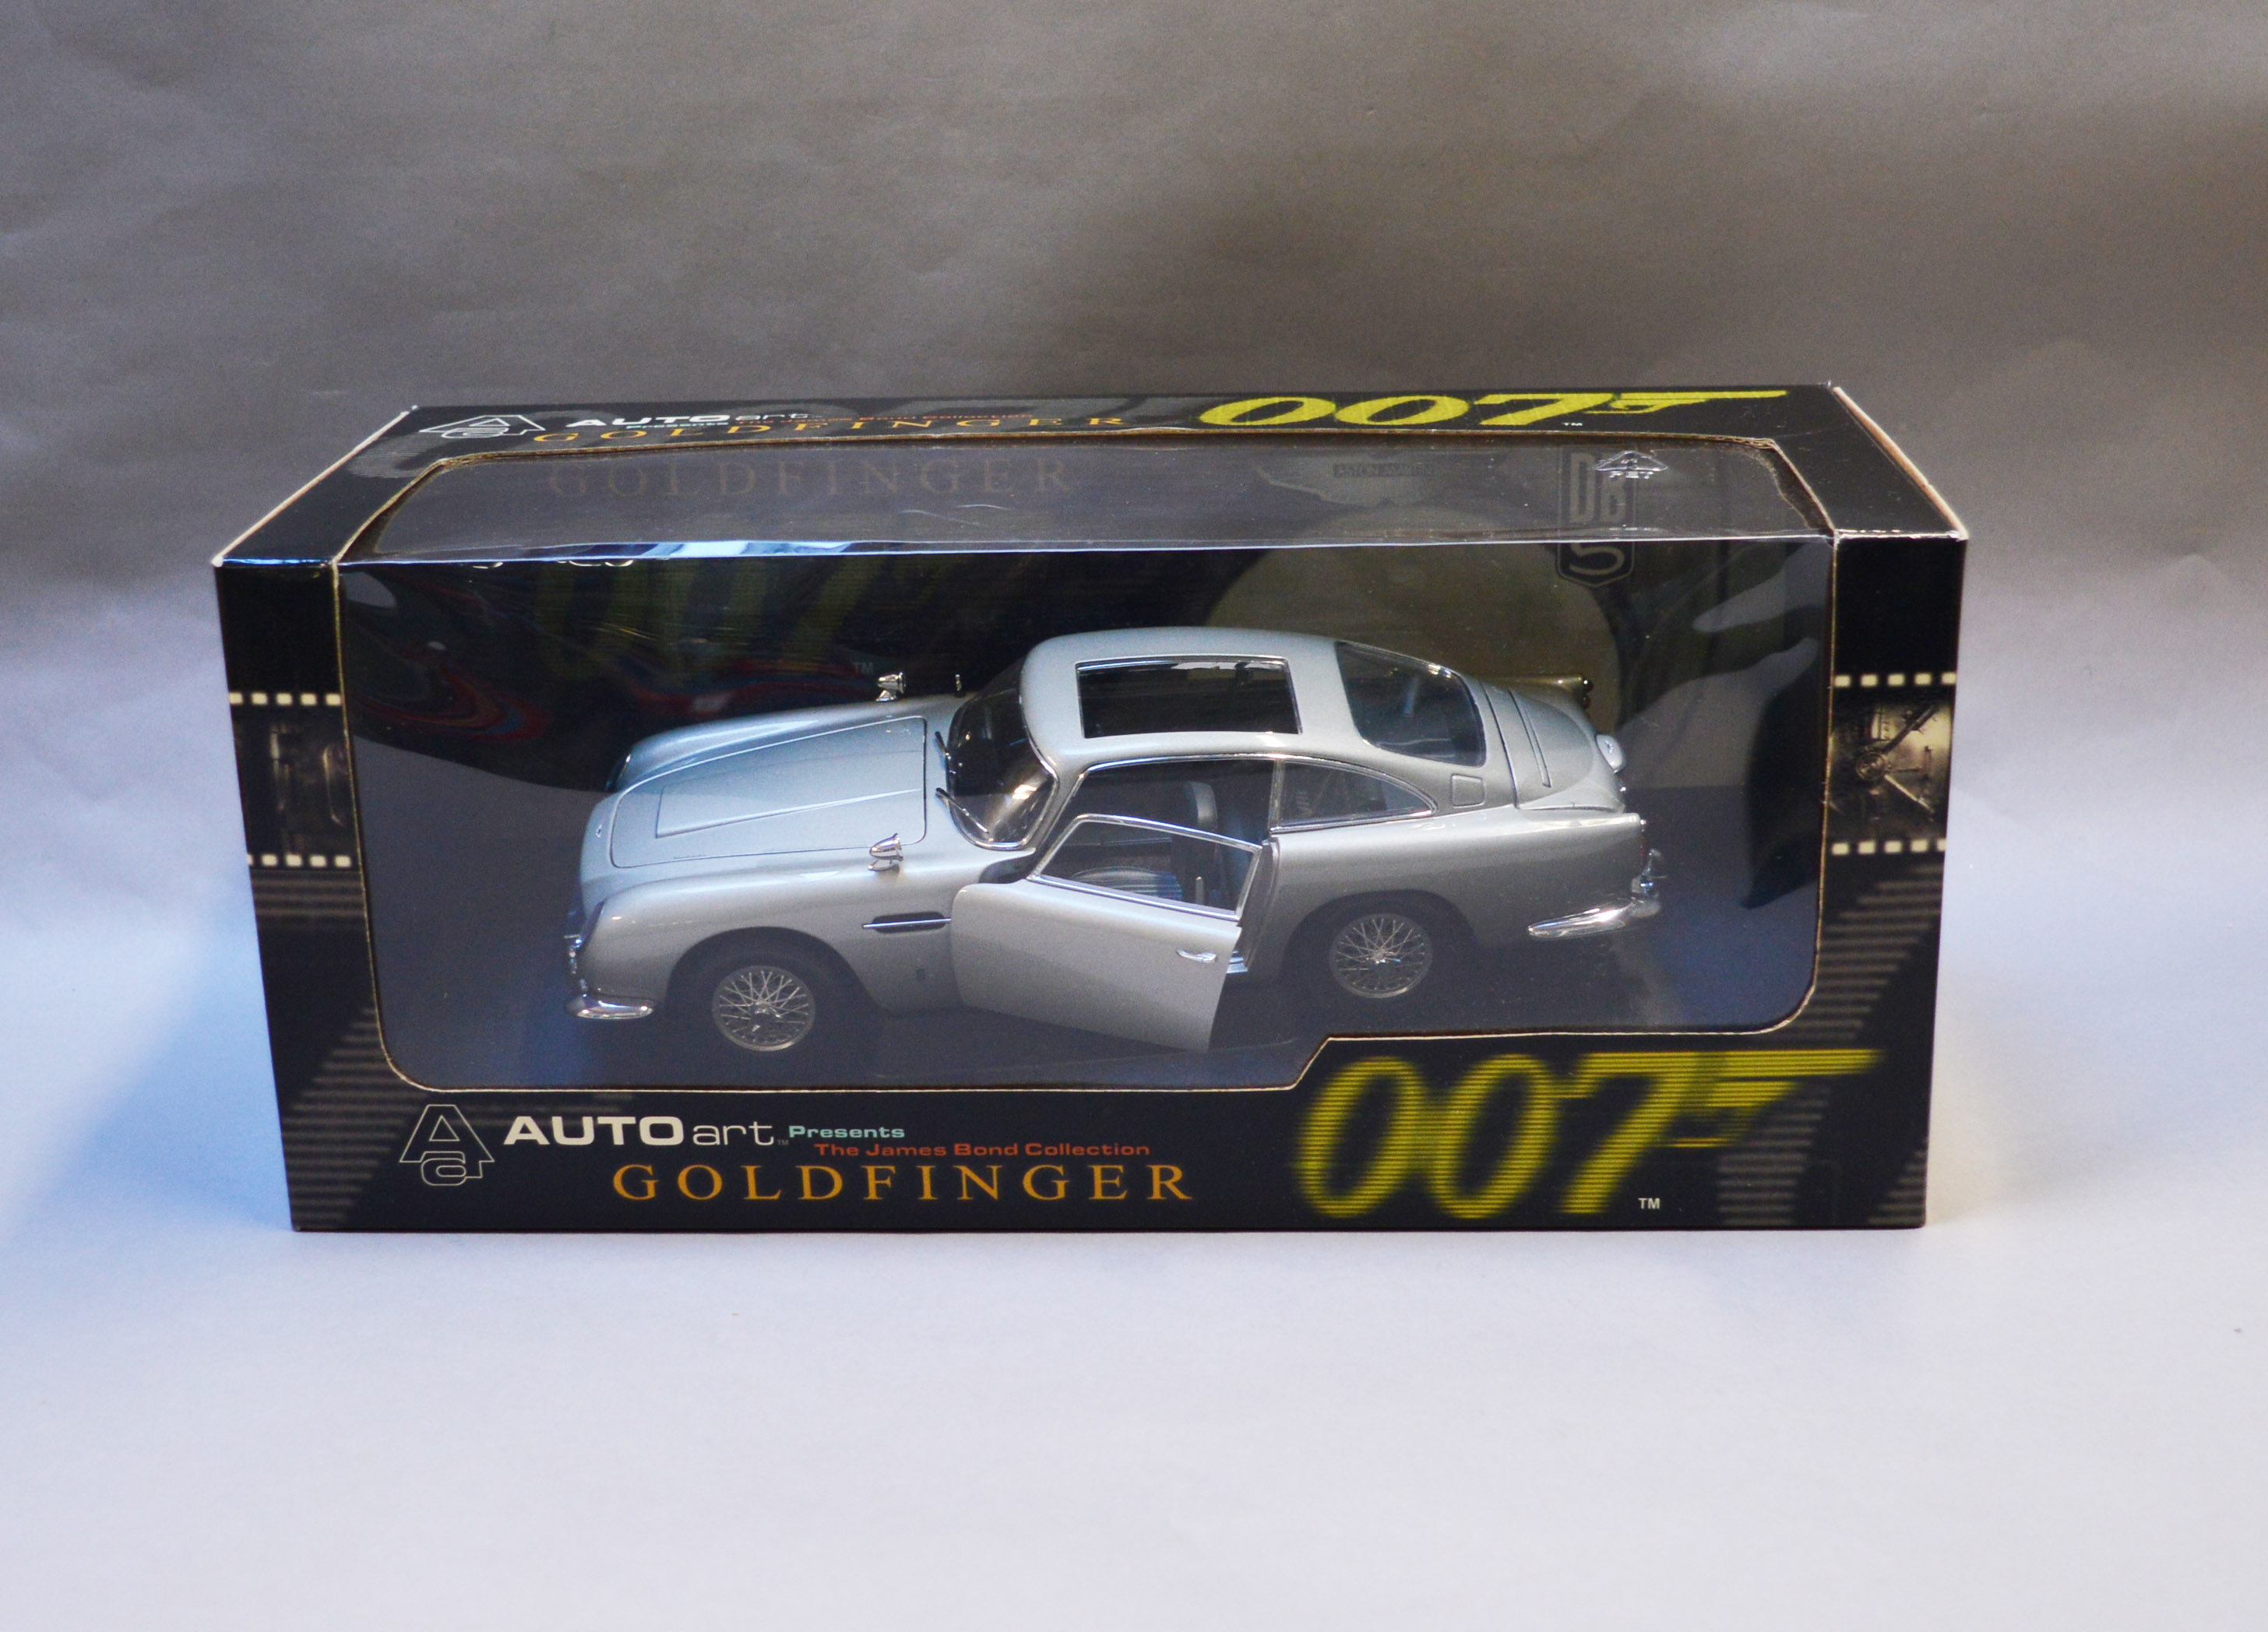 Lot 13 - James Bond 007. A boxed Autoart 1:18 scale Aston Martin DB5 version with Gadjets and no Roof